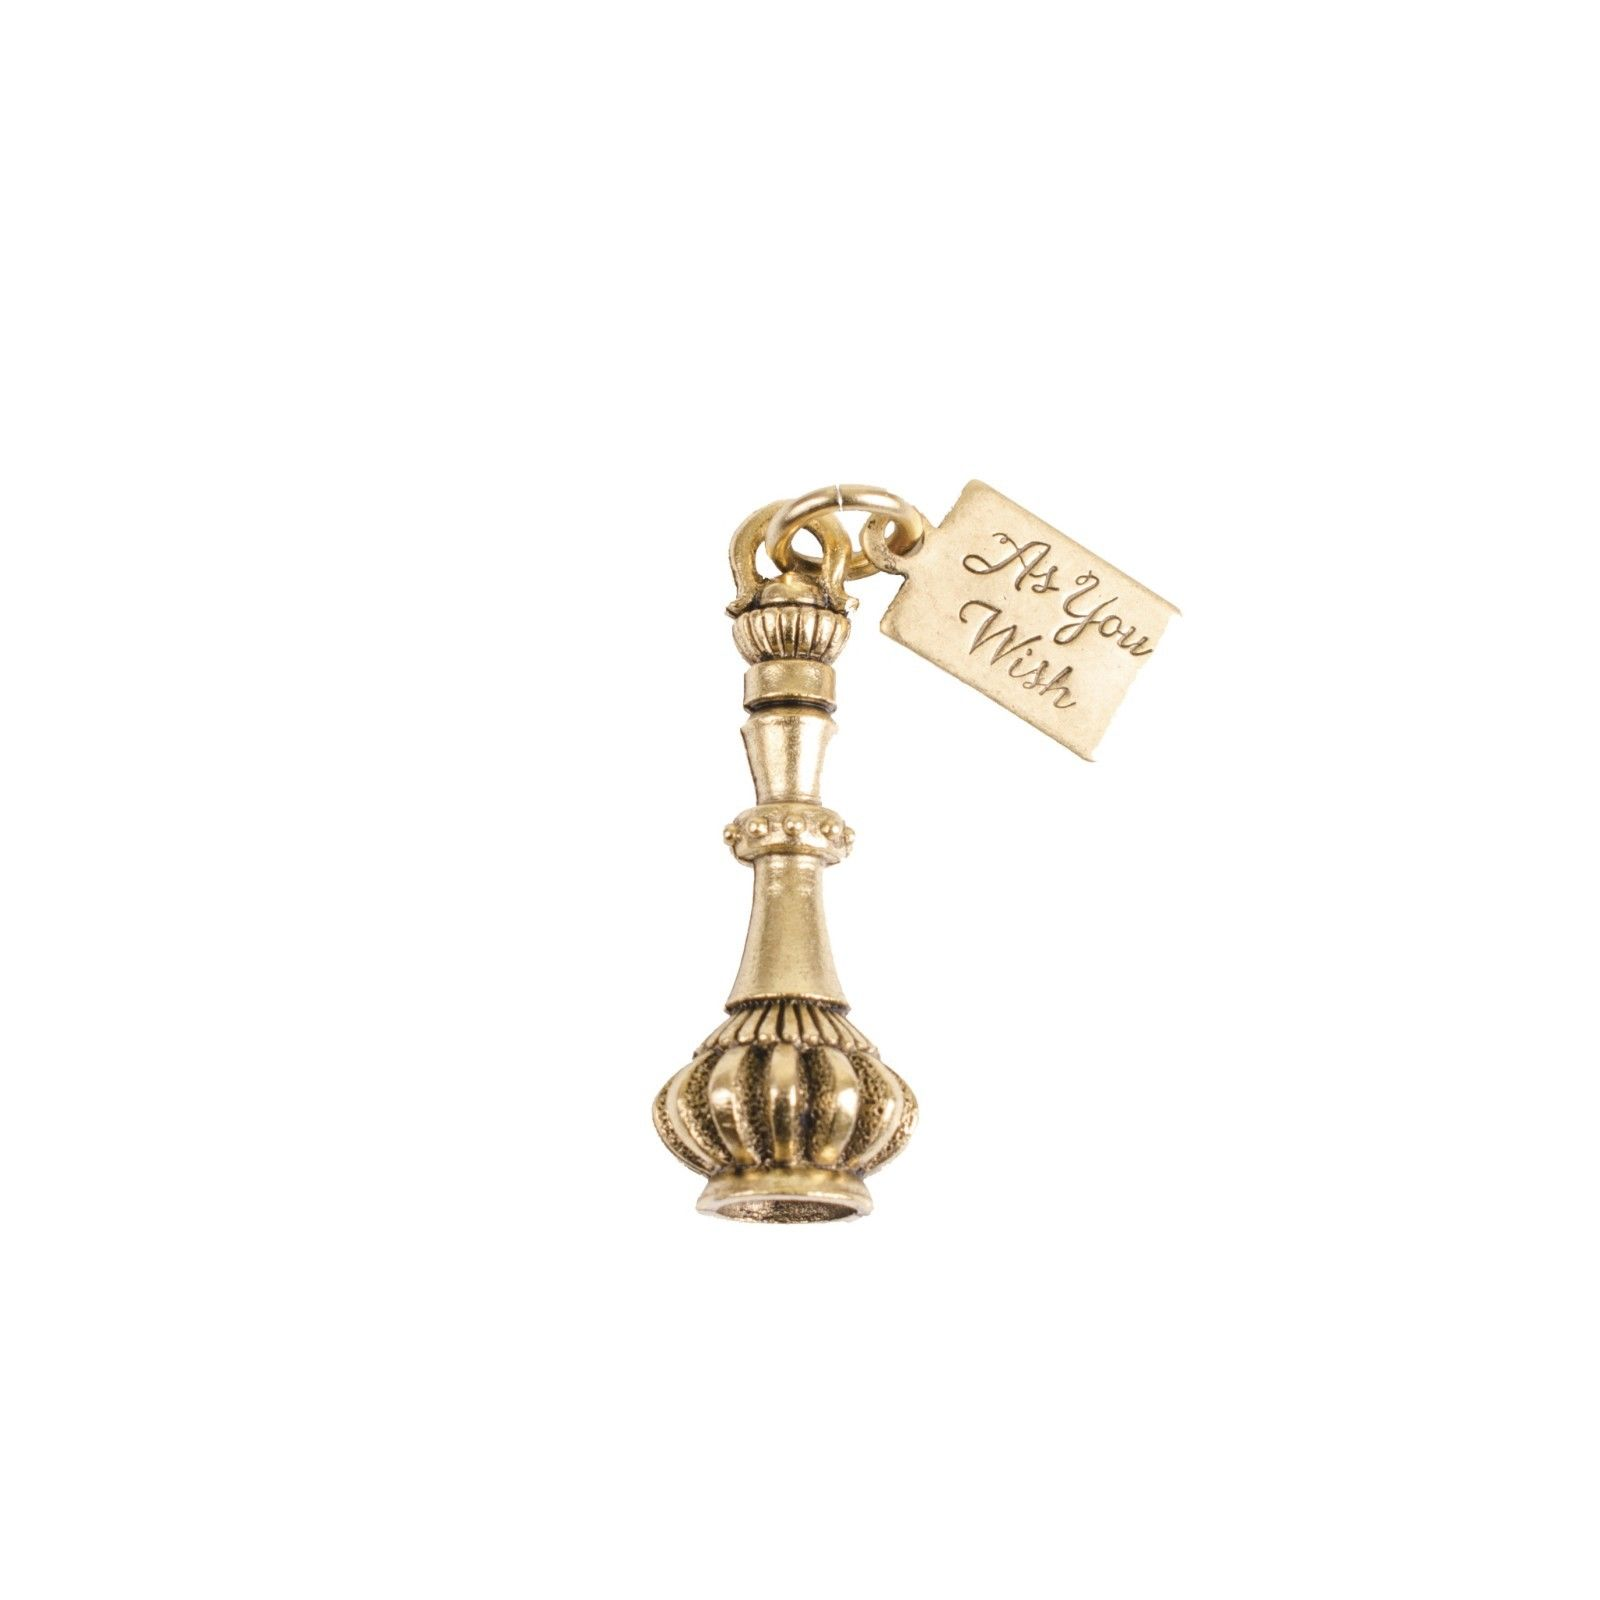 Genie Bottle Necklace: Beaucoup Designs Gold Or Silver As You Wish Genie Bottle